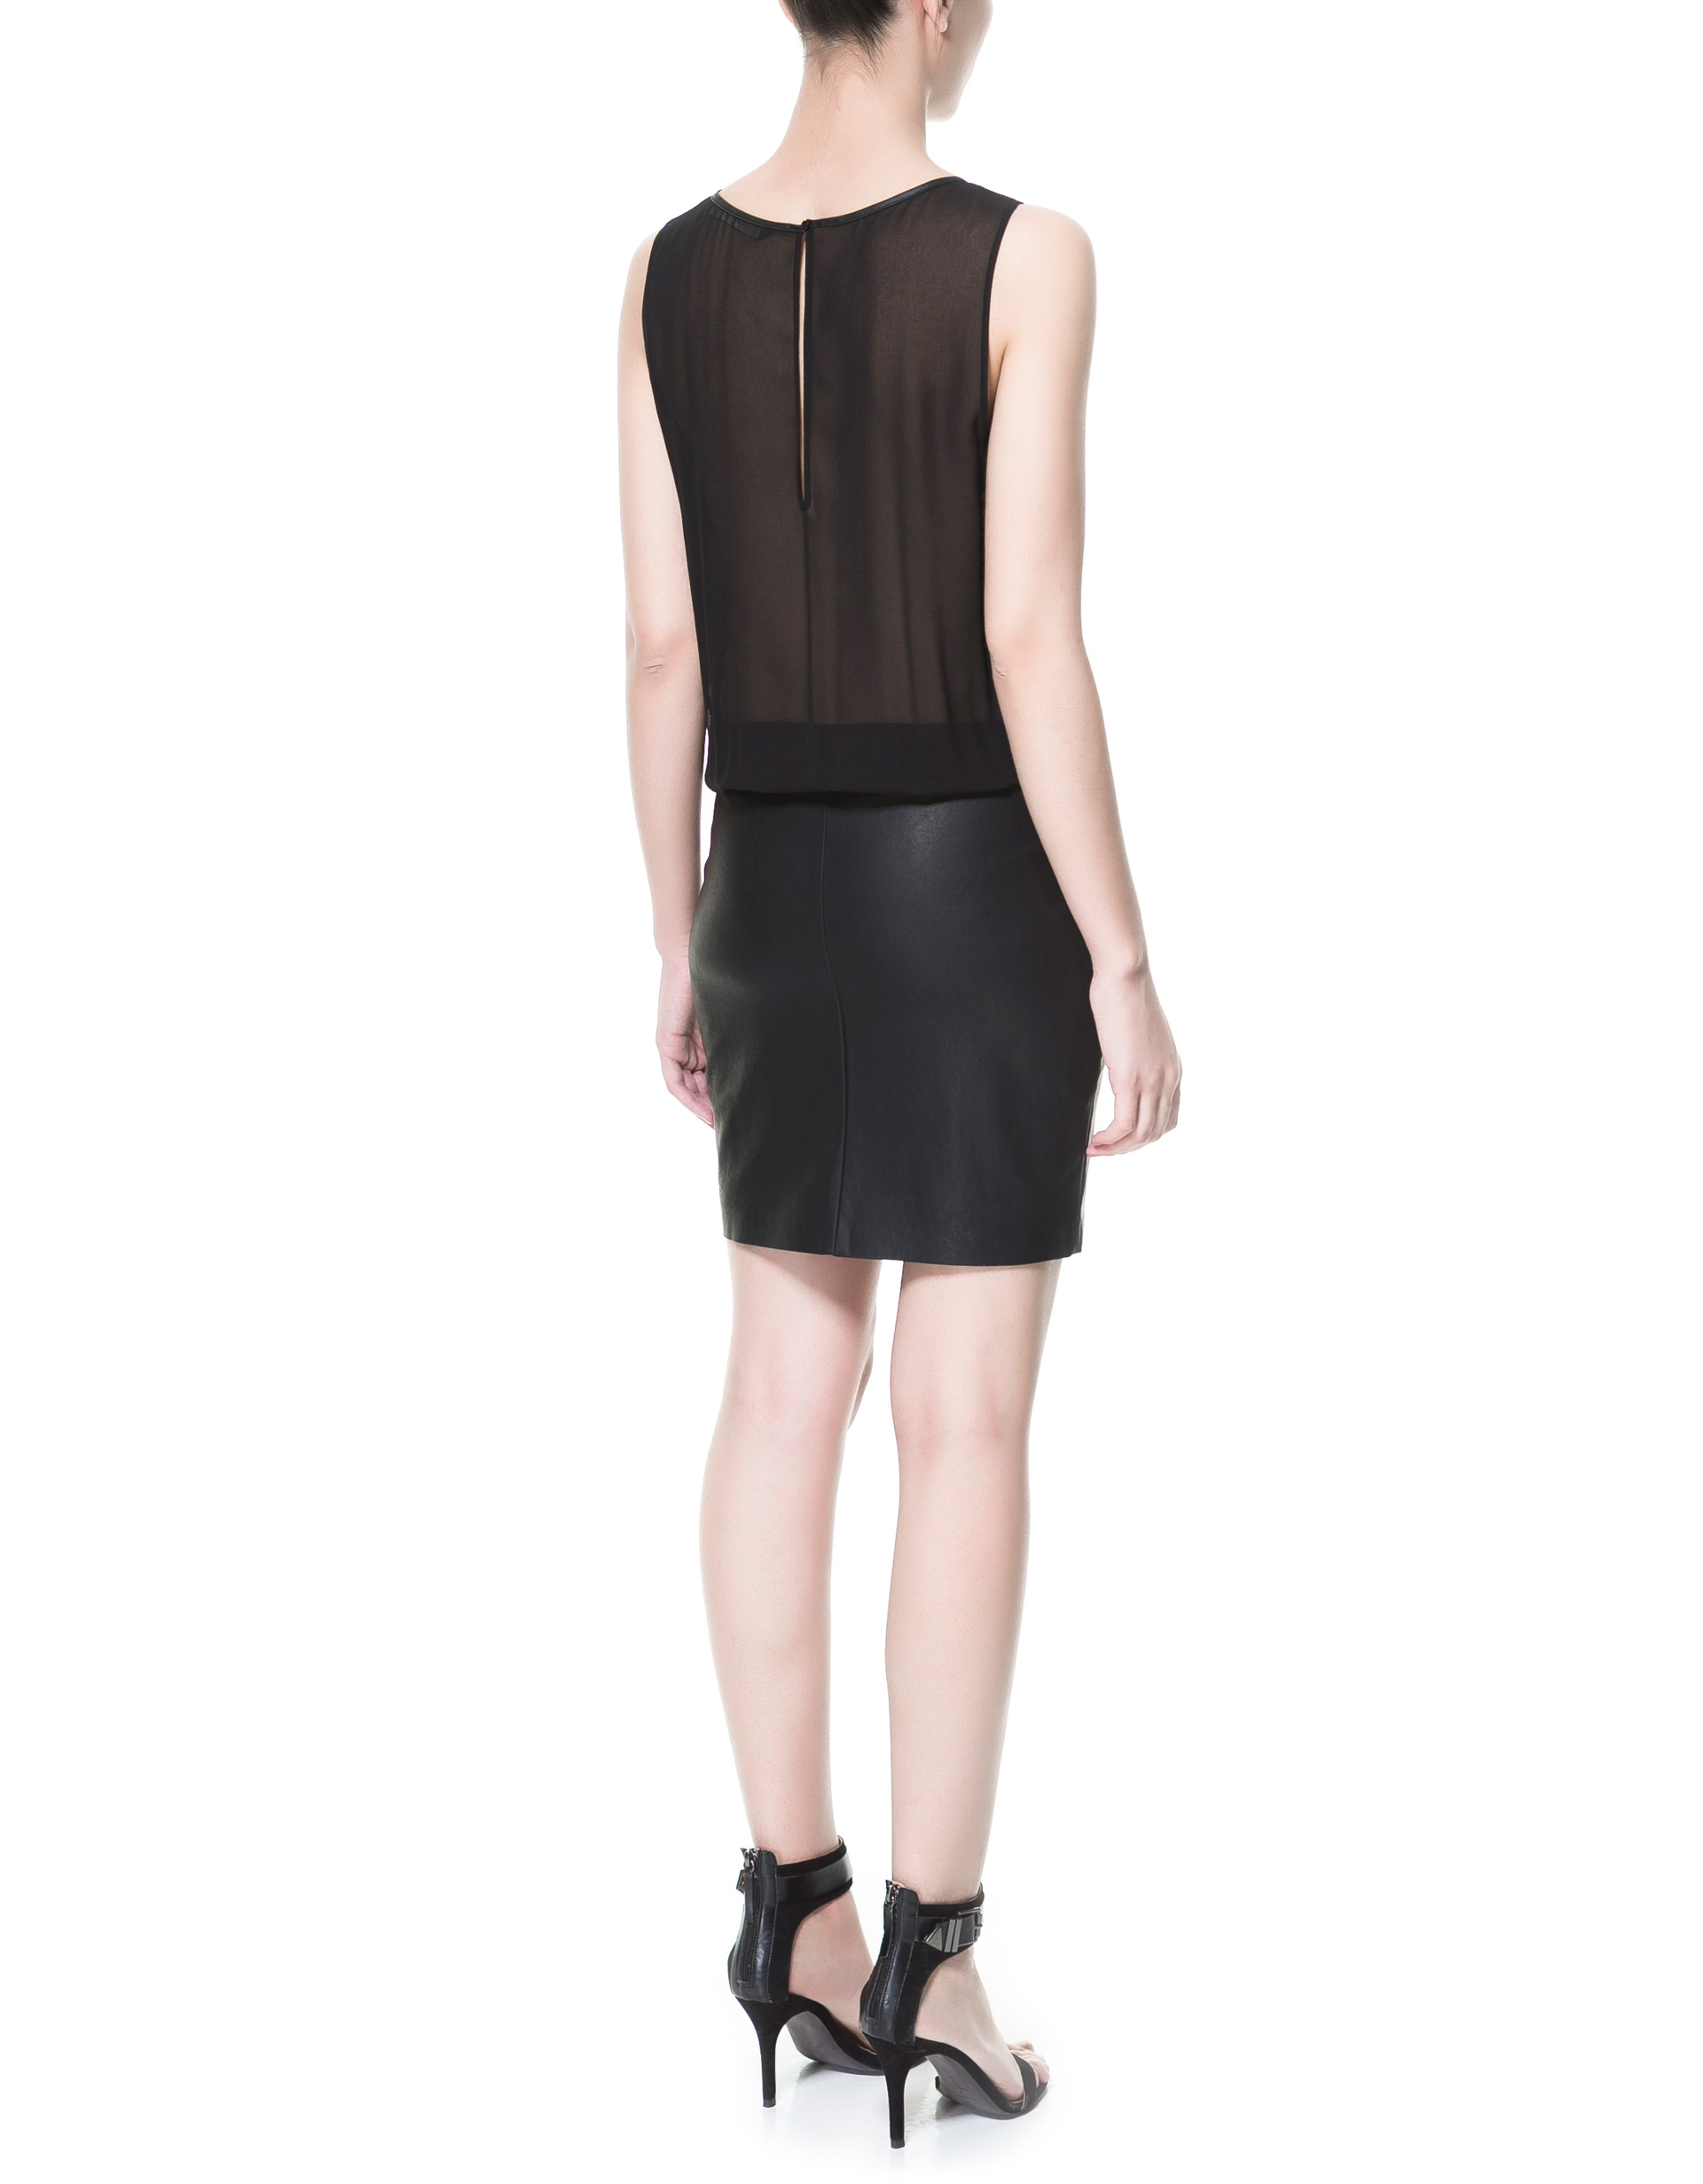 Zara Combined Dress with Faux Leather Skirt in Black | Lyst